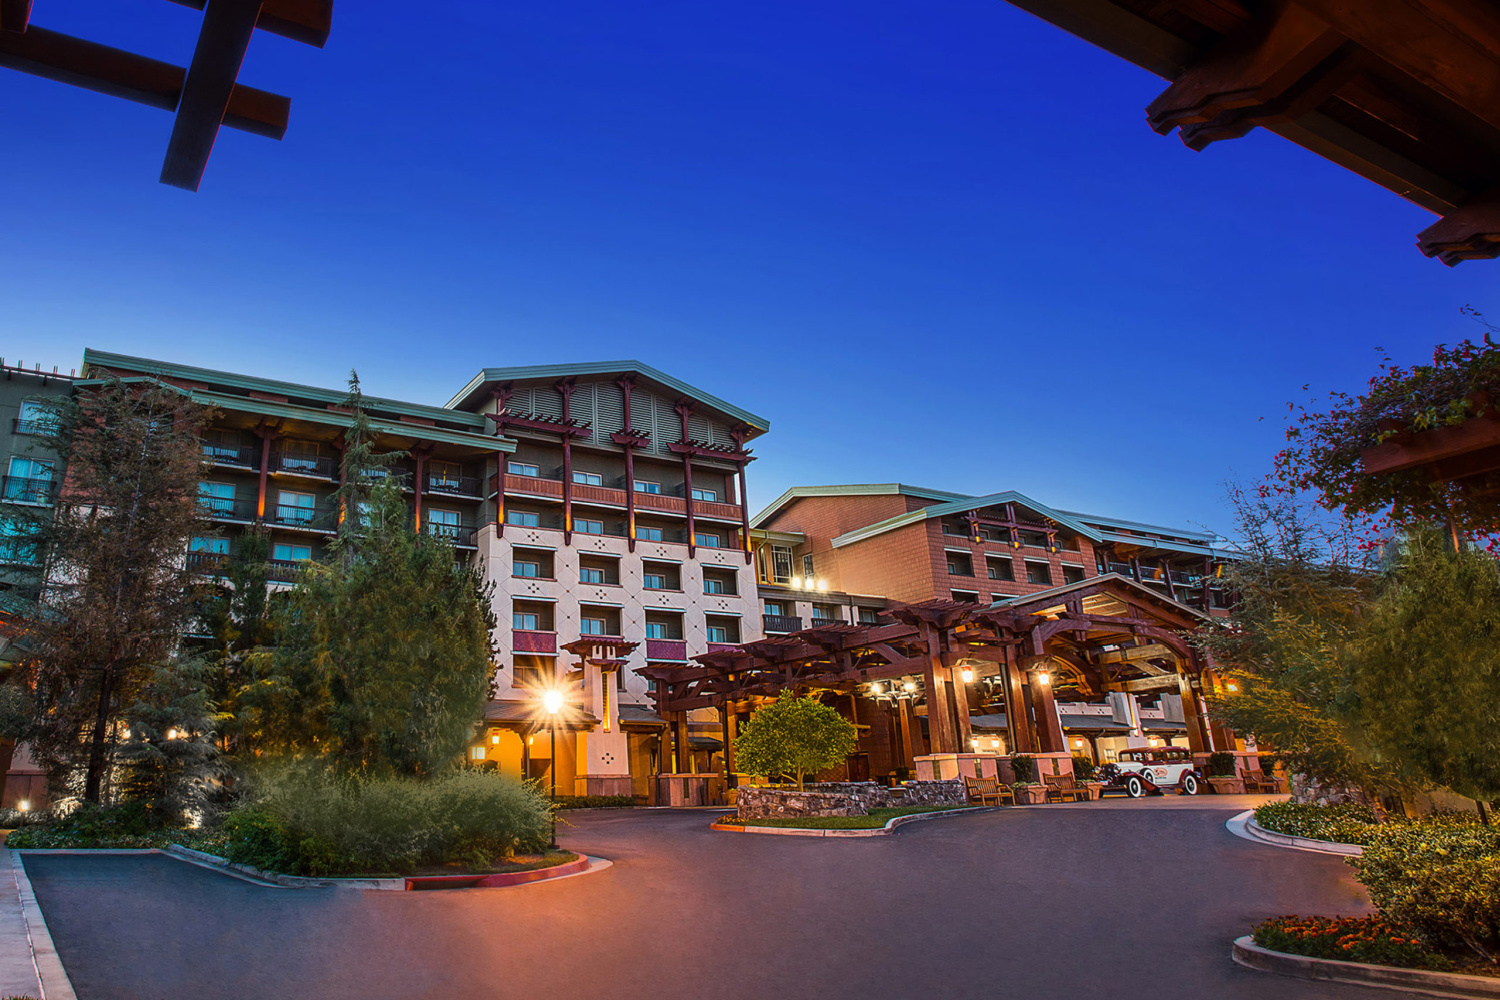 Front of Disney's Grand Californian hotel